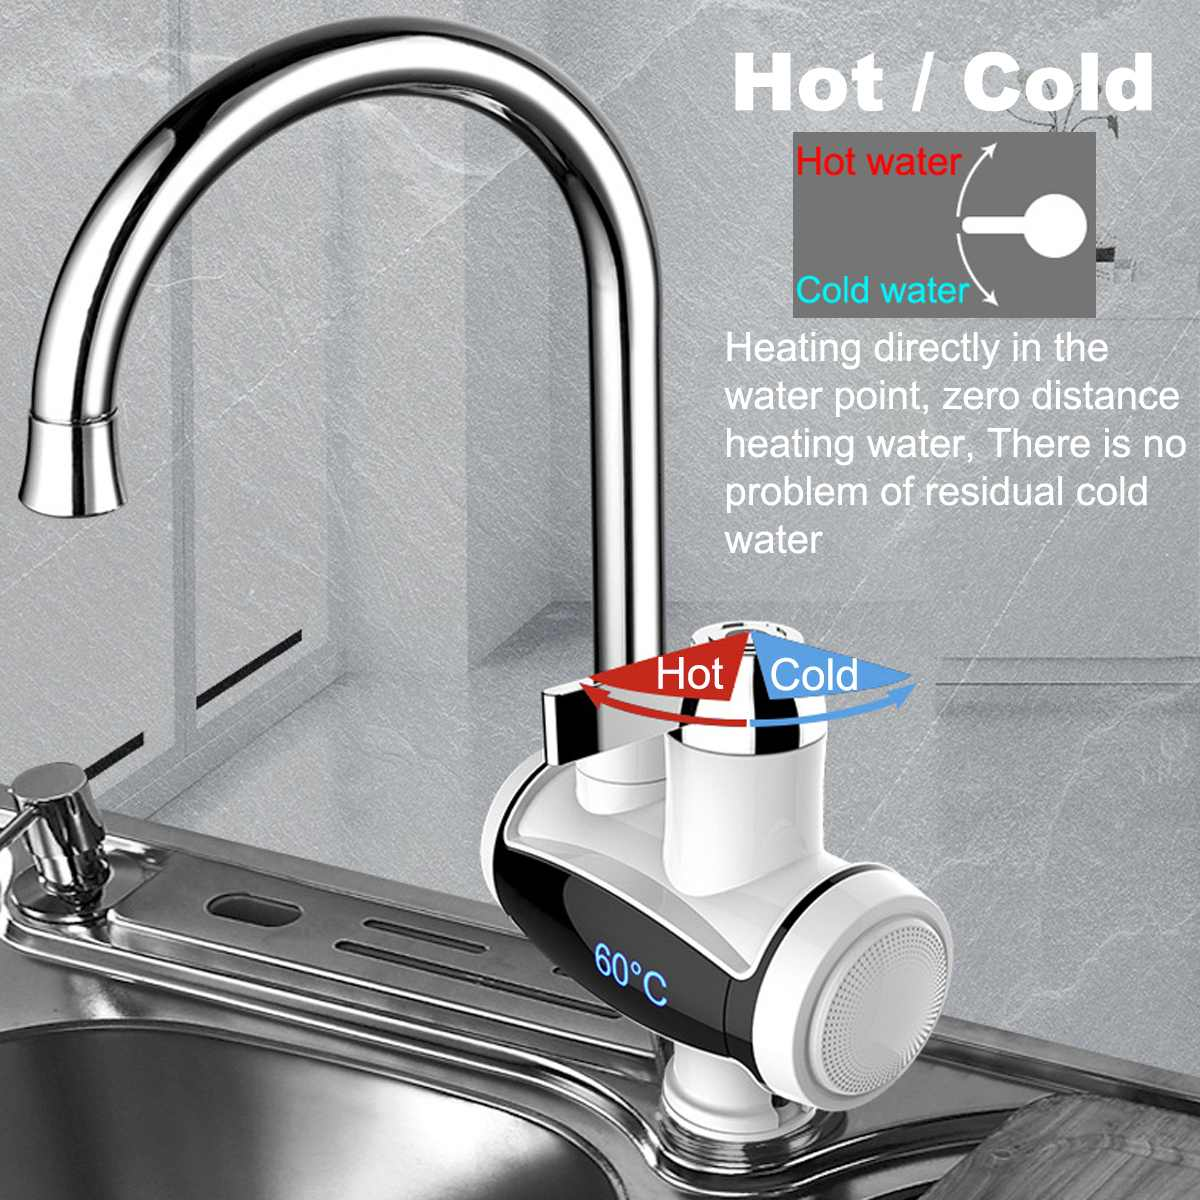 220V 3000W Instant Electric Faucet Tap Hot Water Heater Stainless Steel Lateral Under Inflow LED Display Bathroom Kitchen